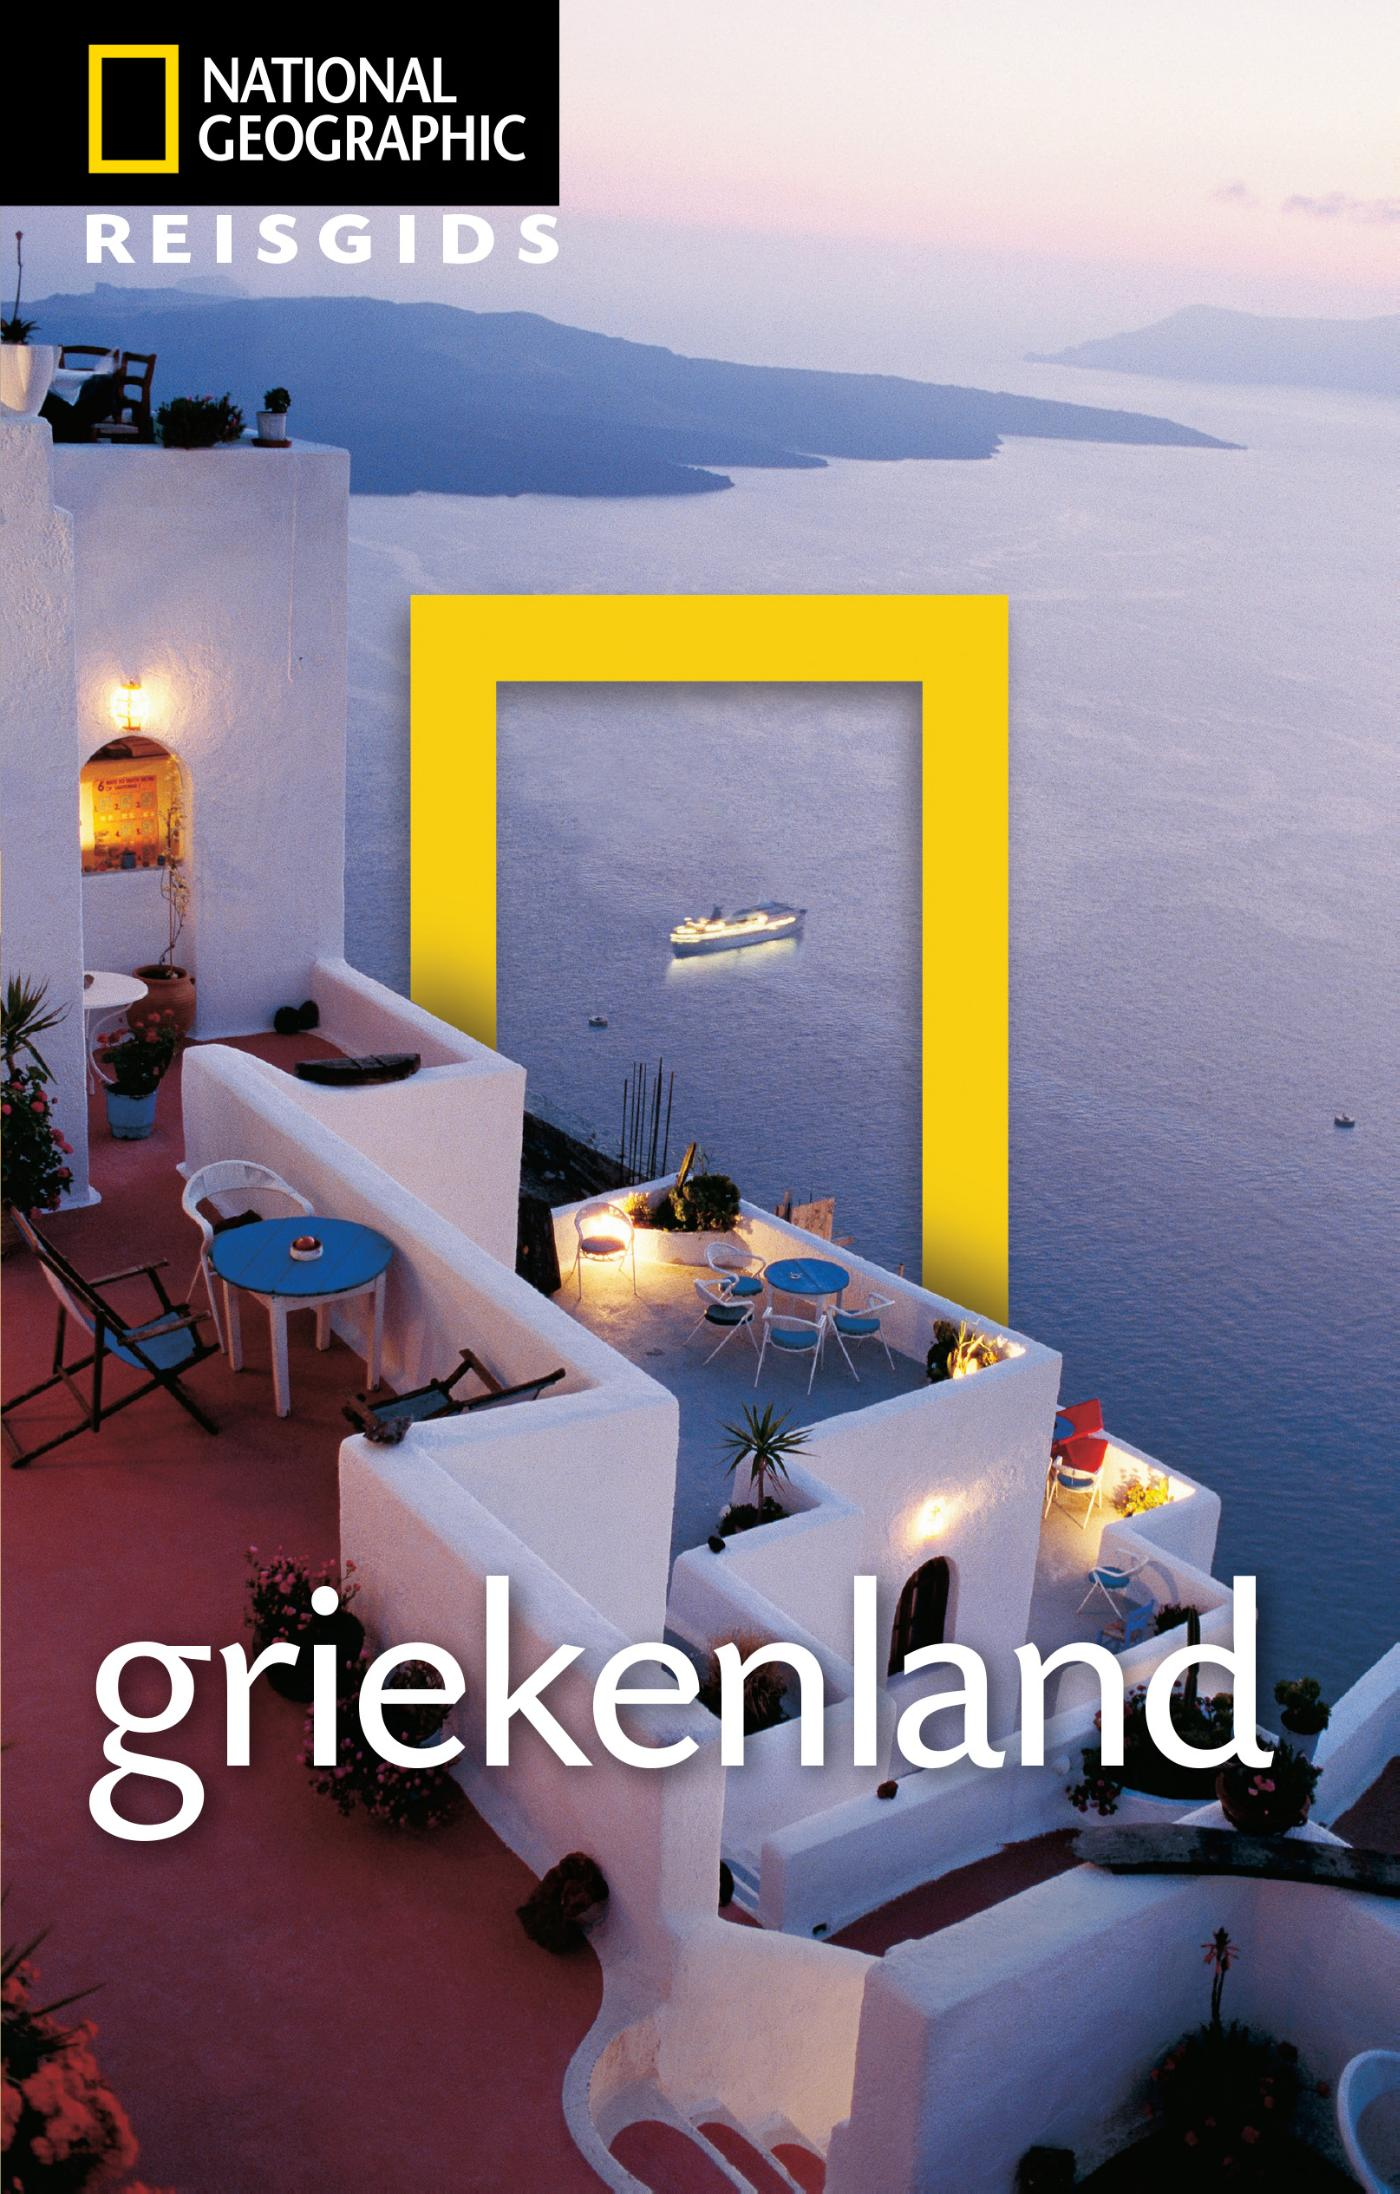 National Geographic Reisgids: Griekenland